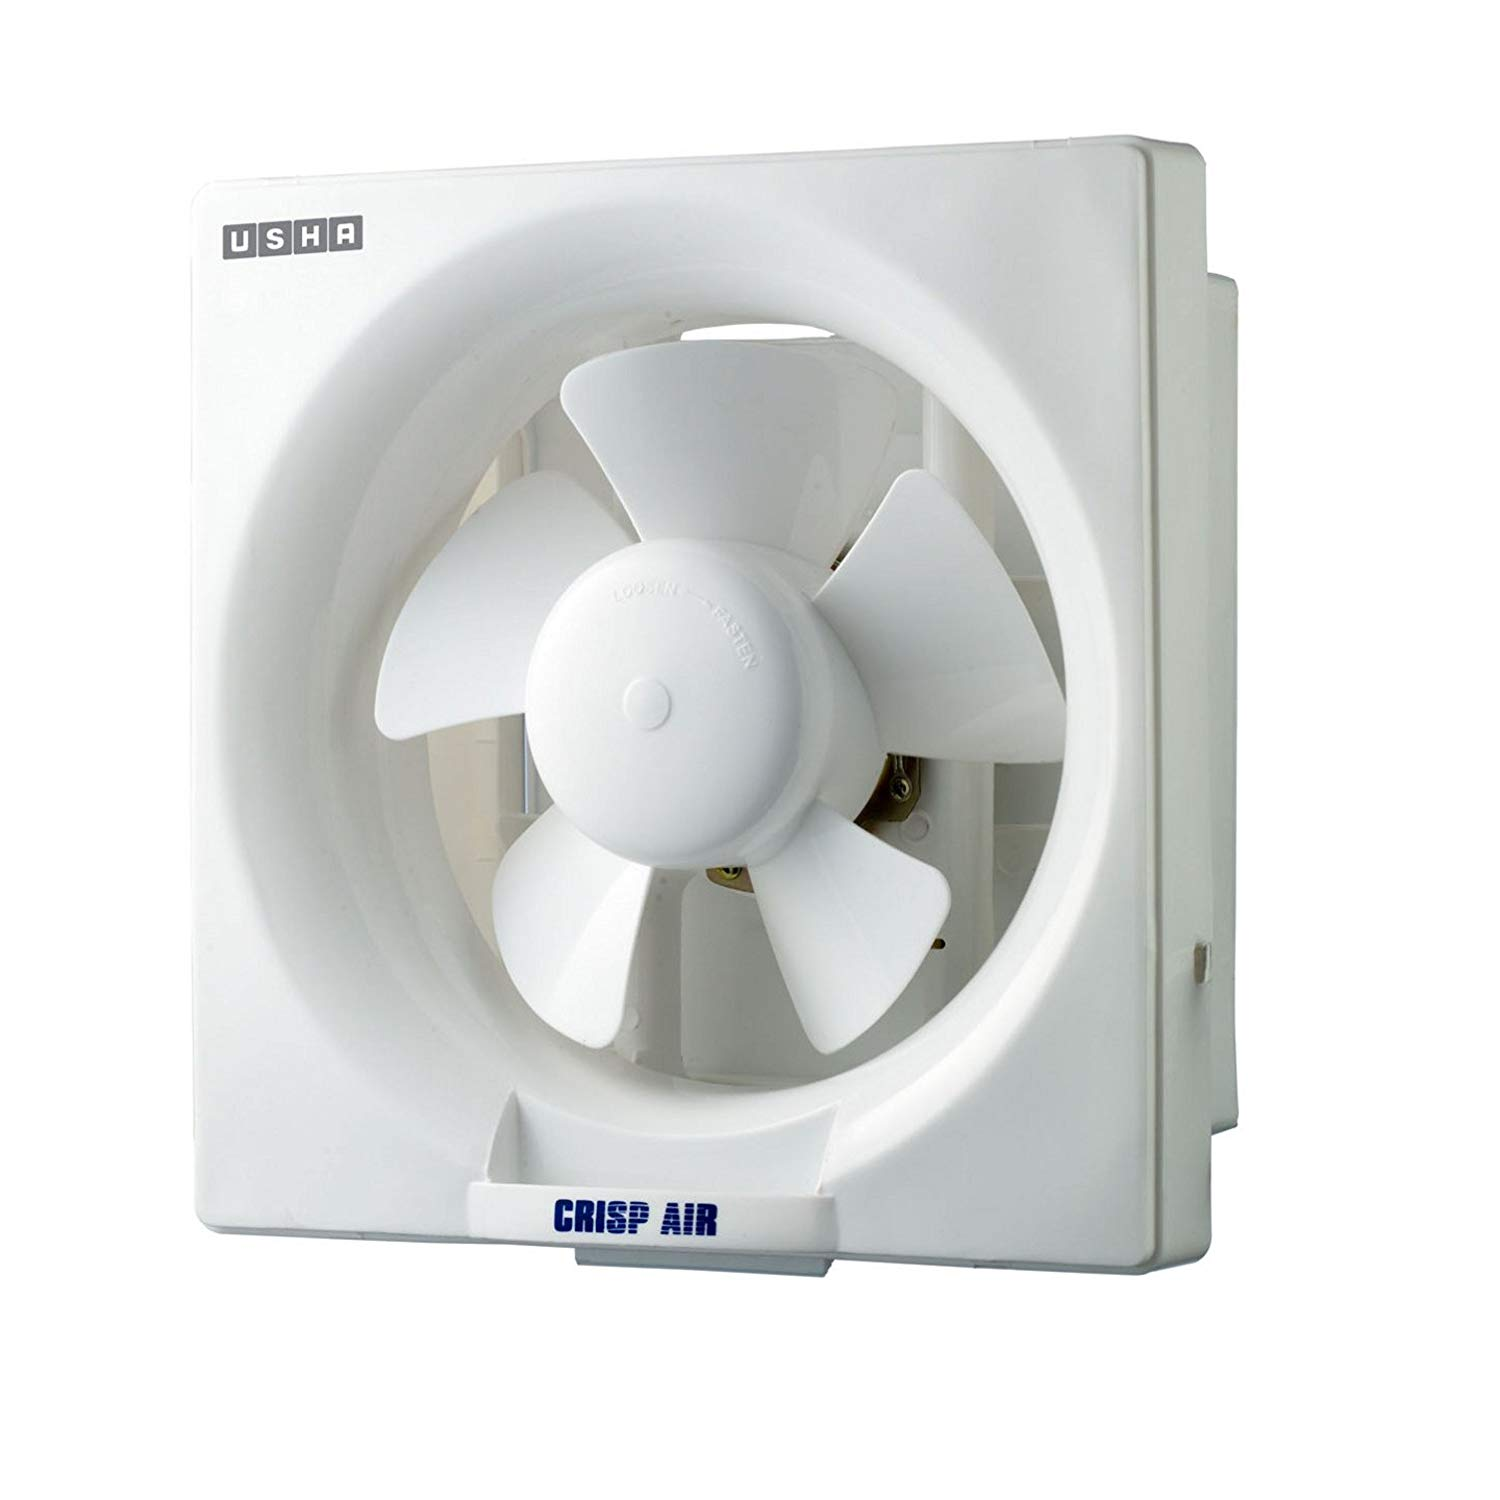 Usha 200mm Crisp Air Exhaust Fan